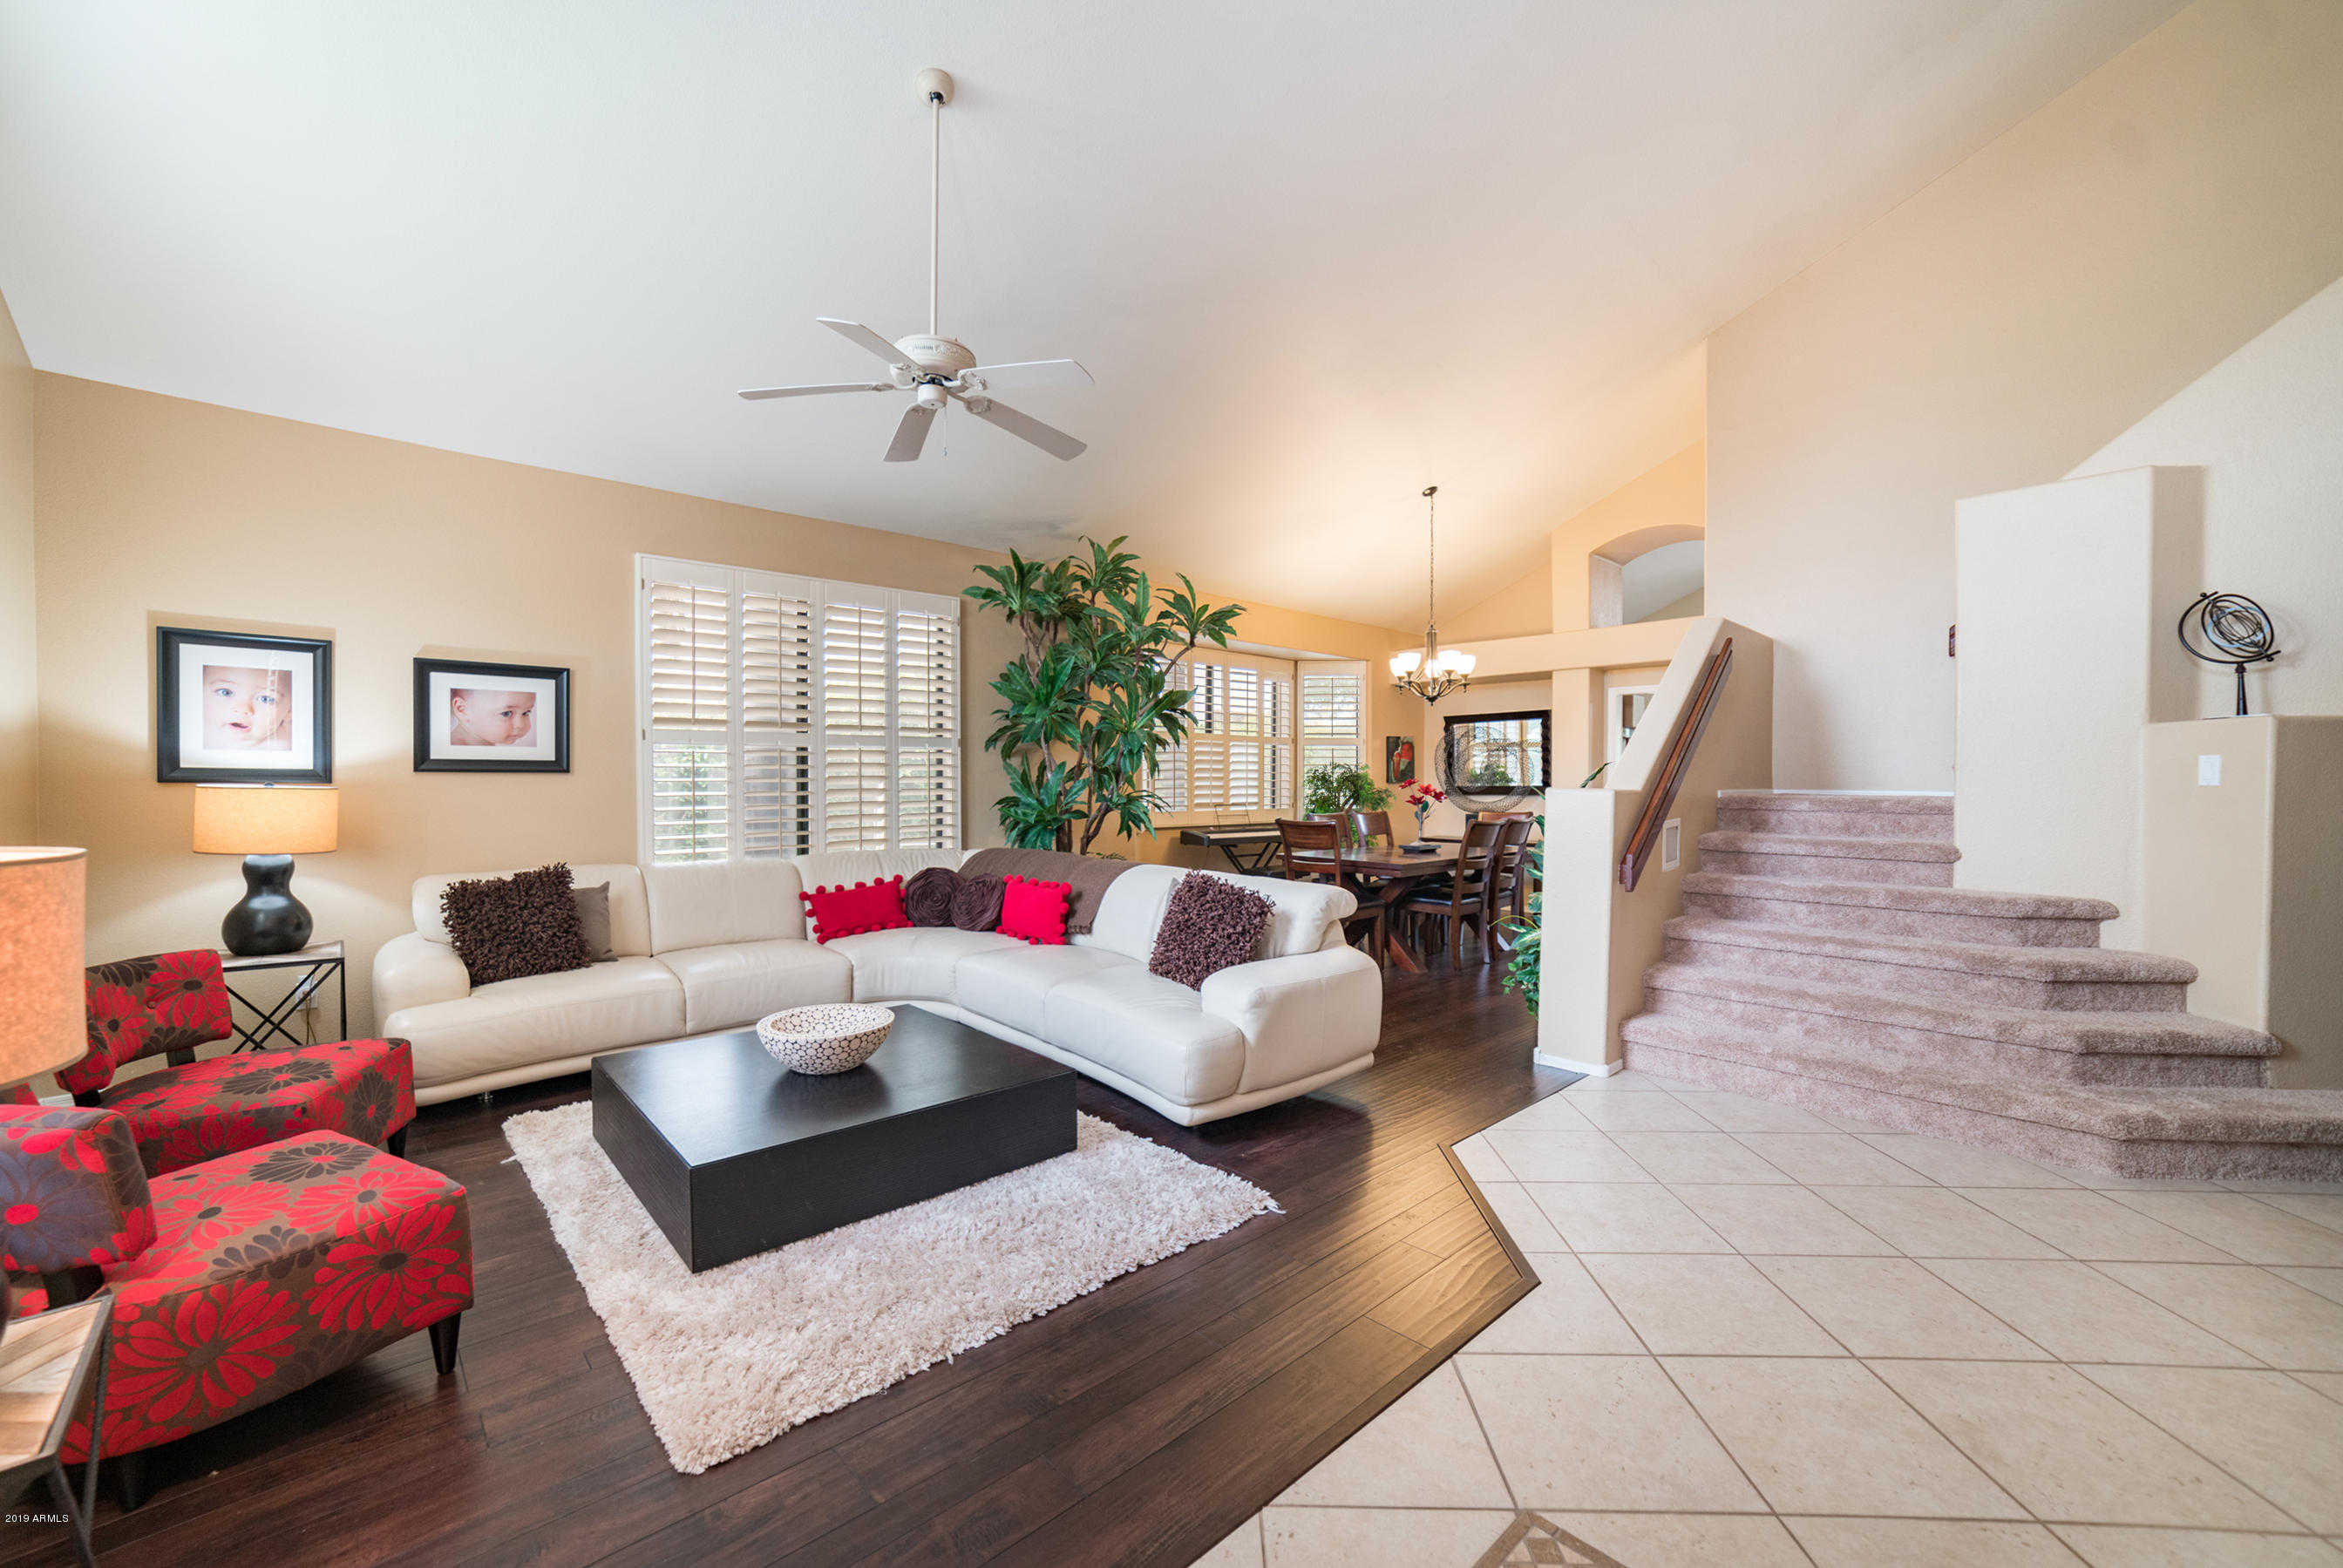 $539,900 - 4Br/3Ba - Home for Sale in Camelot Views, Glendale